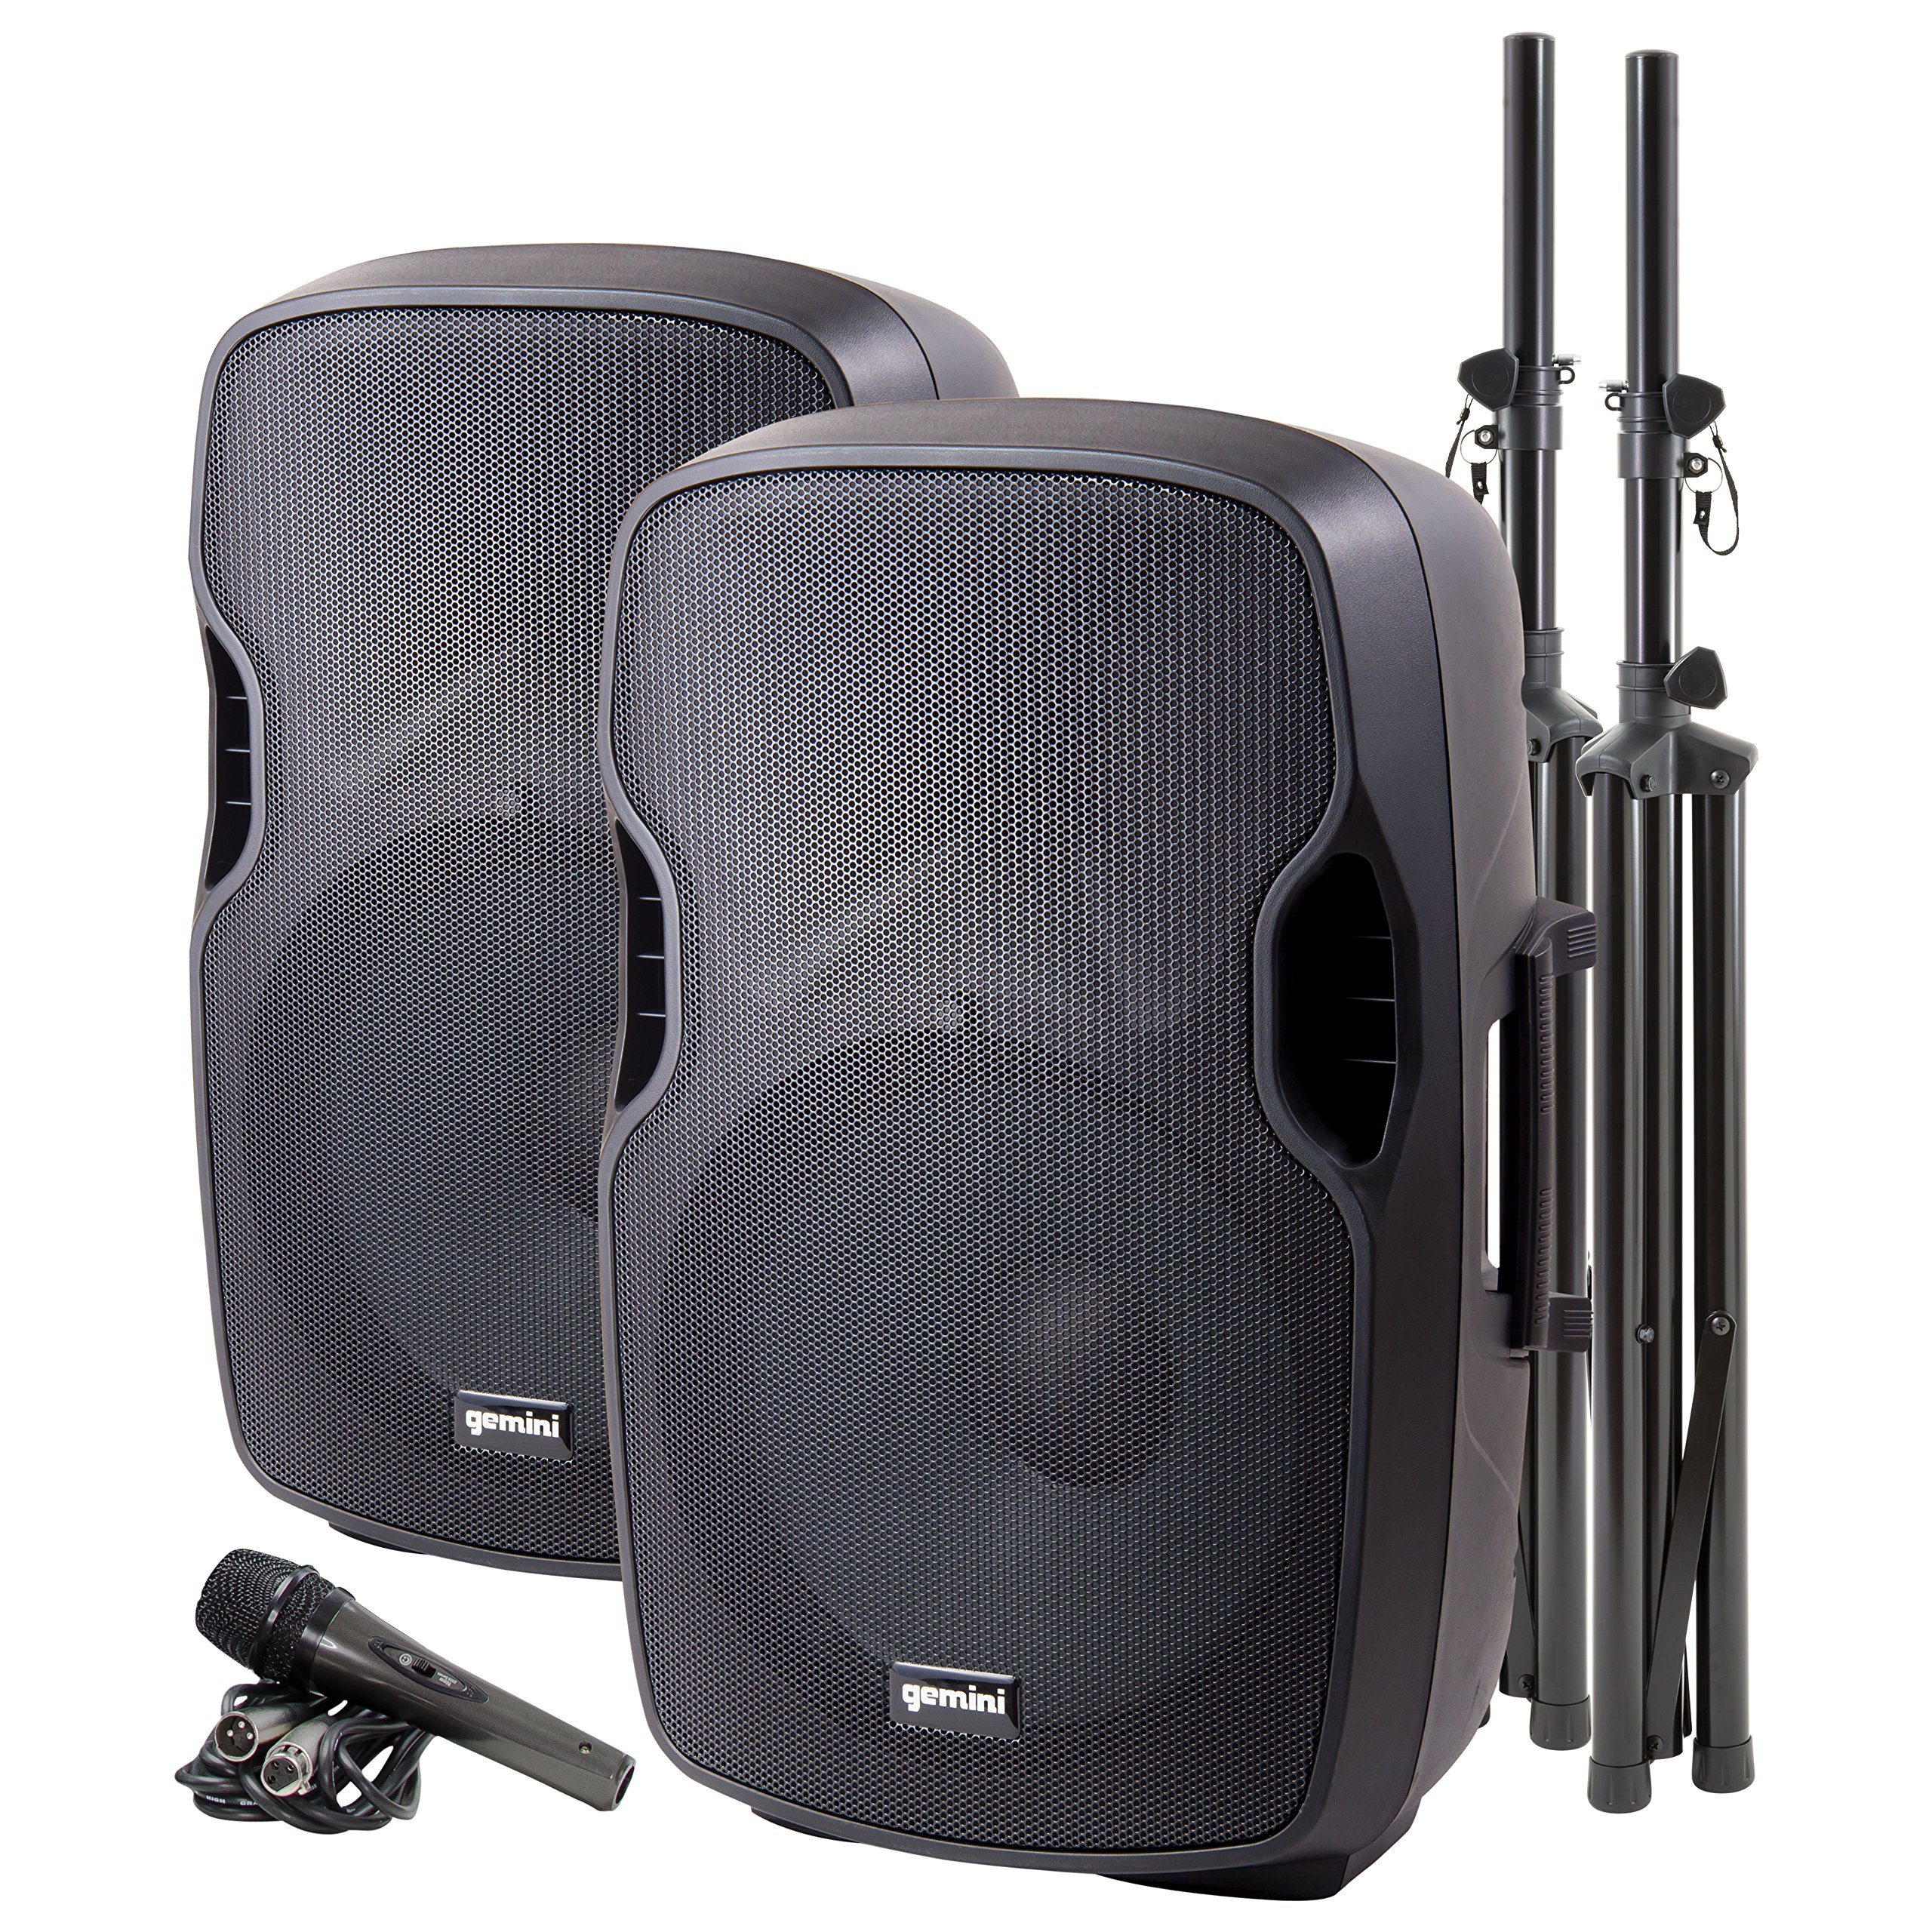 Gemini PA Series PA-SYS15 Complete Dual 15-inch Speaker PA Package with Included Speaker Stands and Microphone